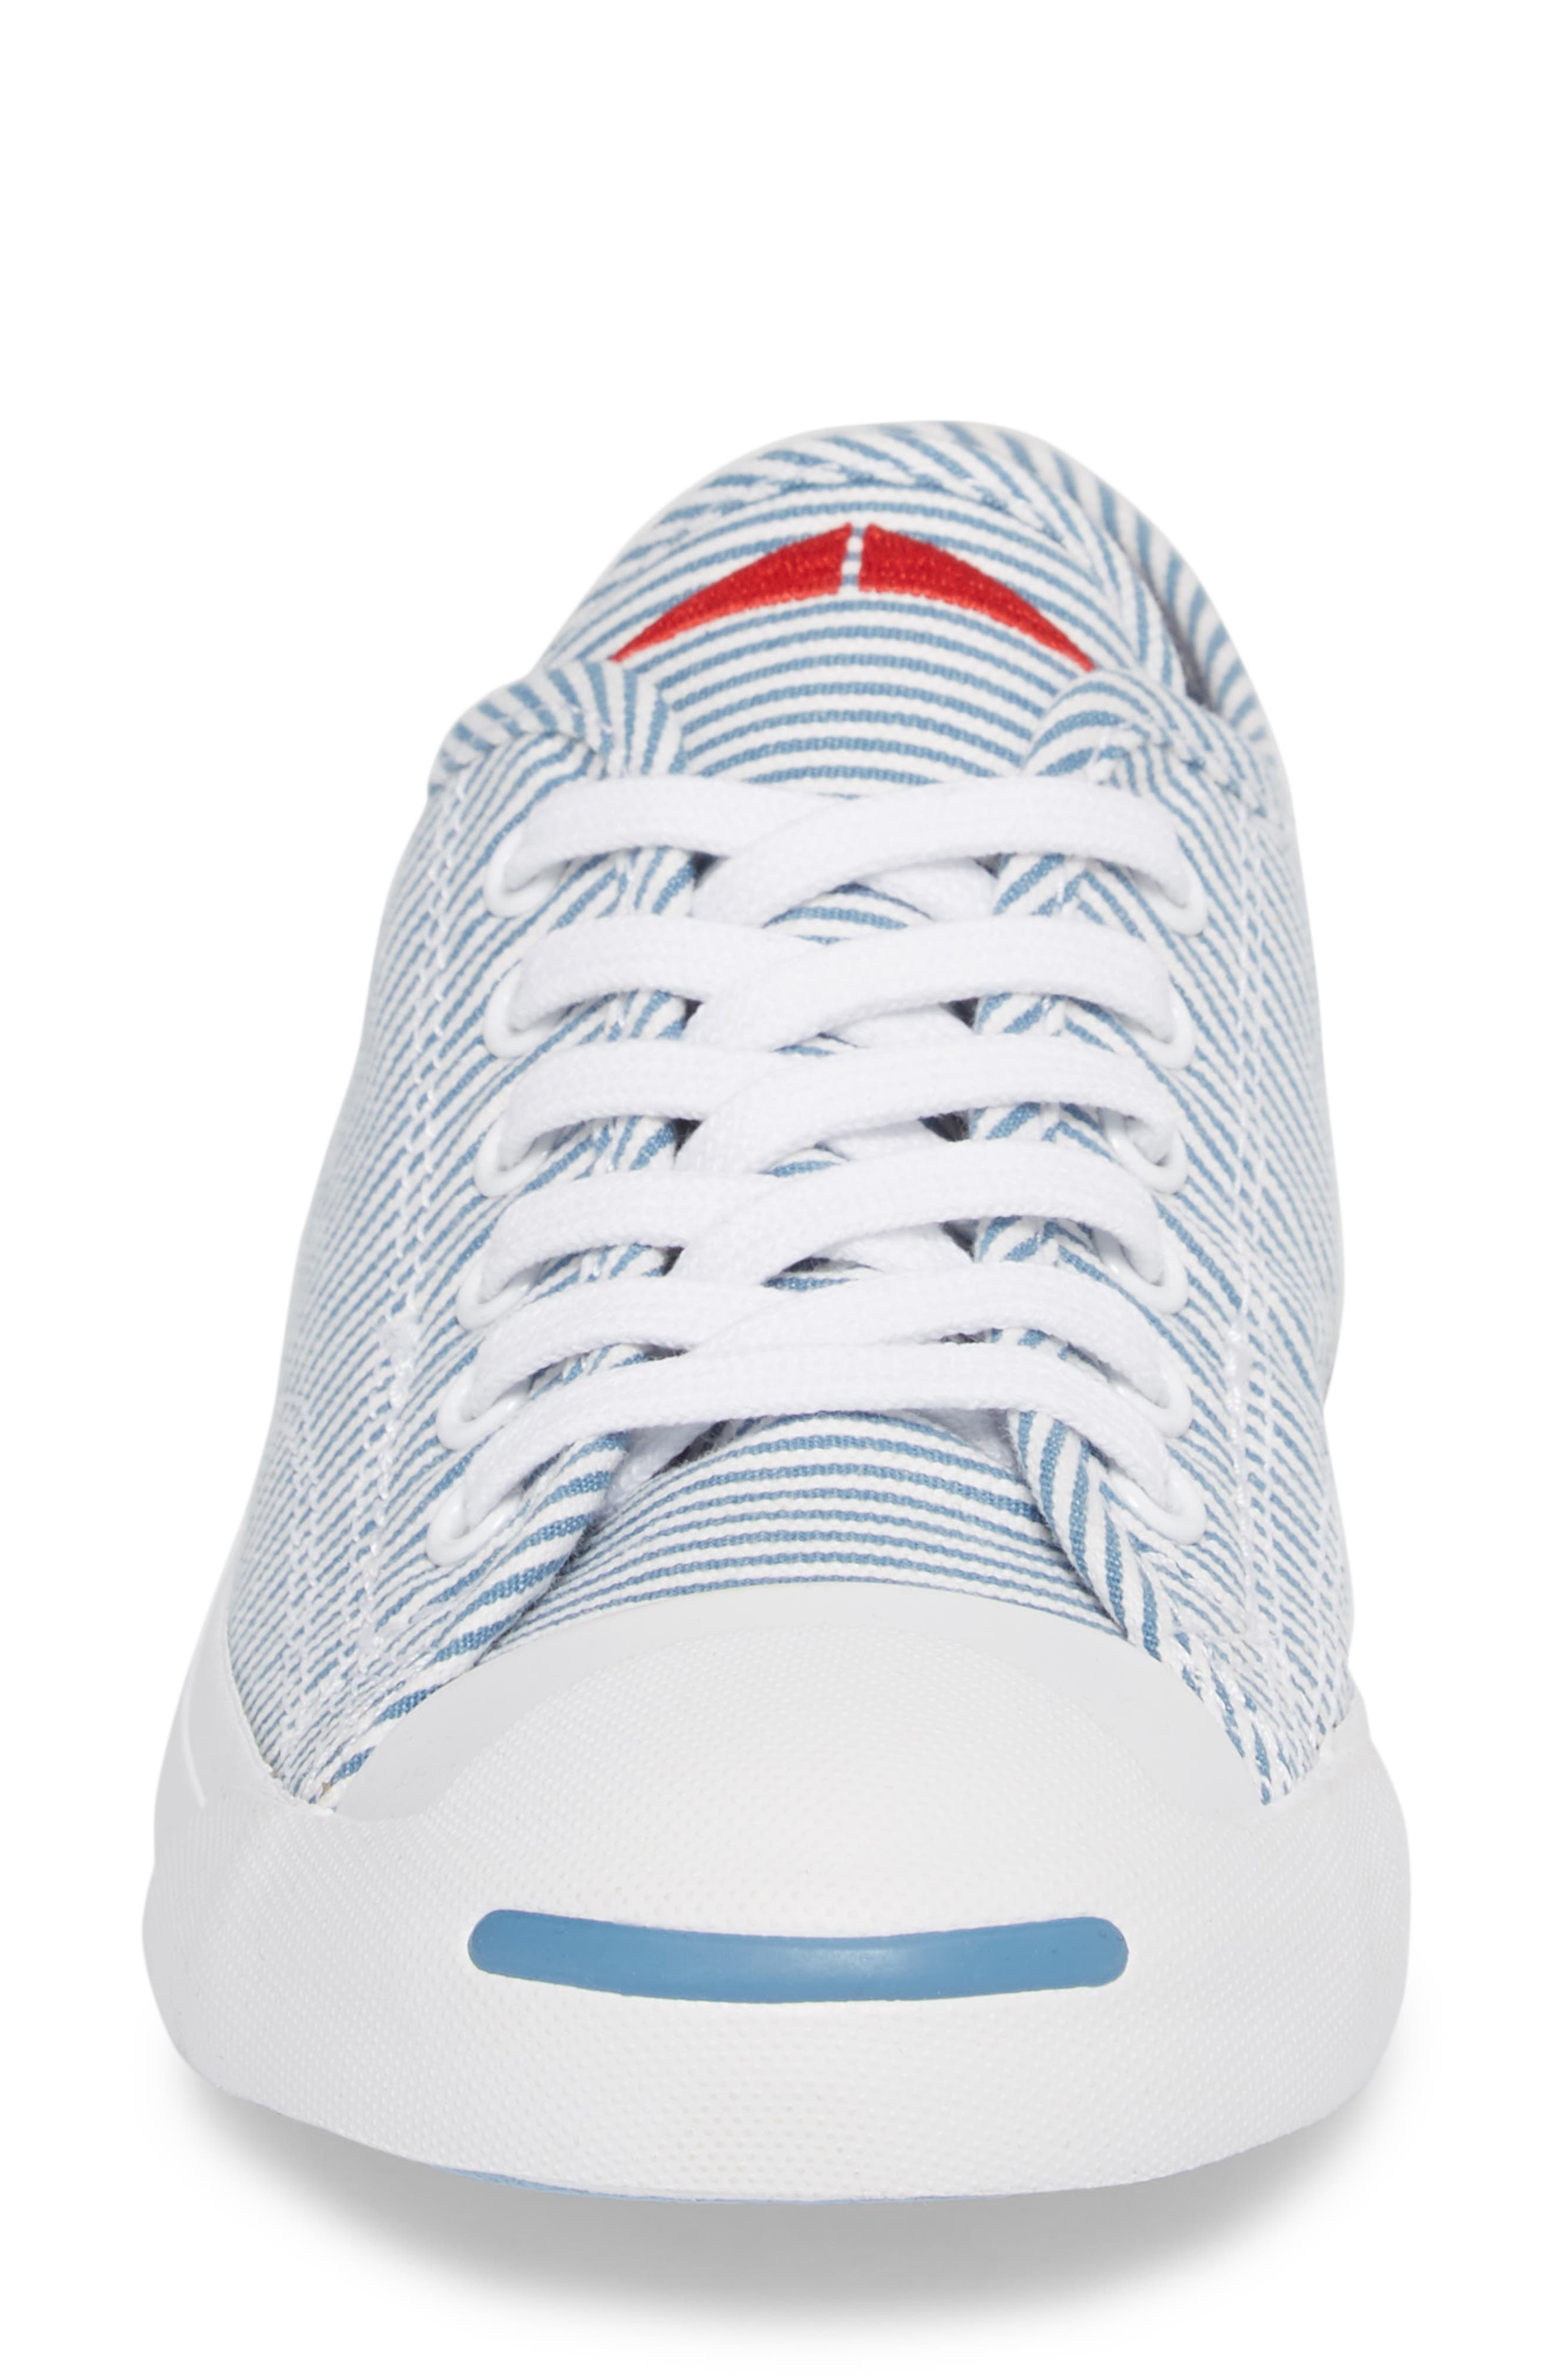 Jack Purcell Low Top Sneaker,                             Alternate thumbnail 4, color,                             Aegean Storm